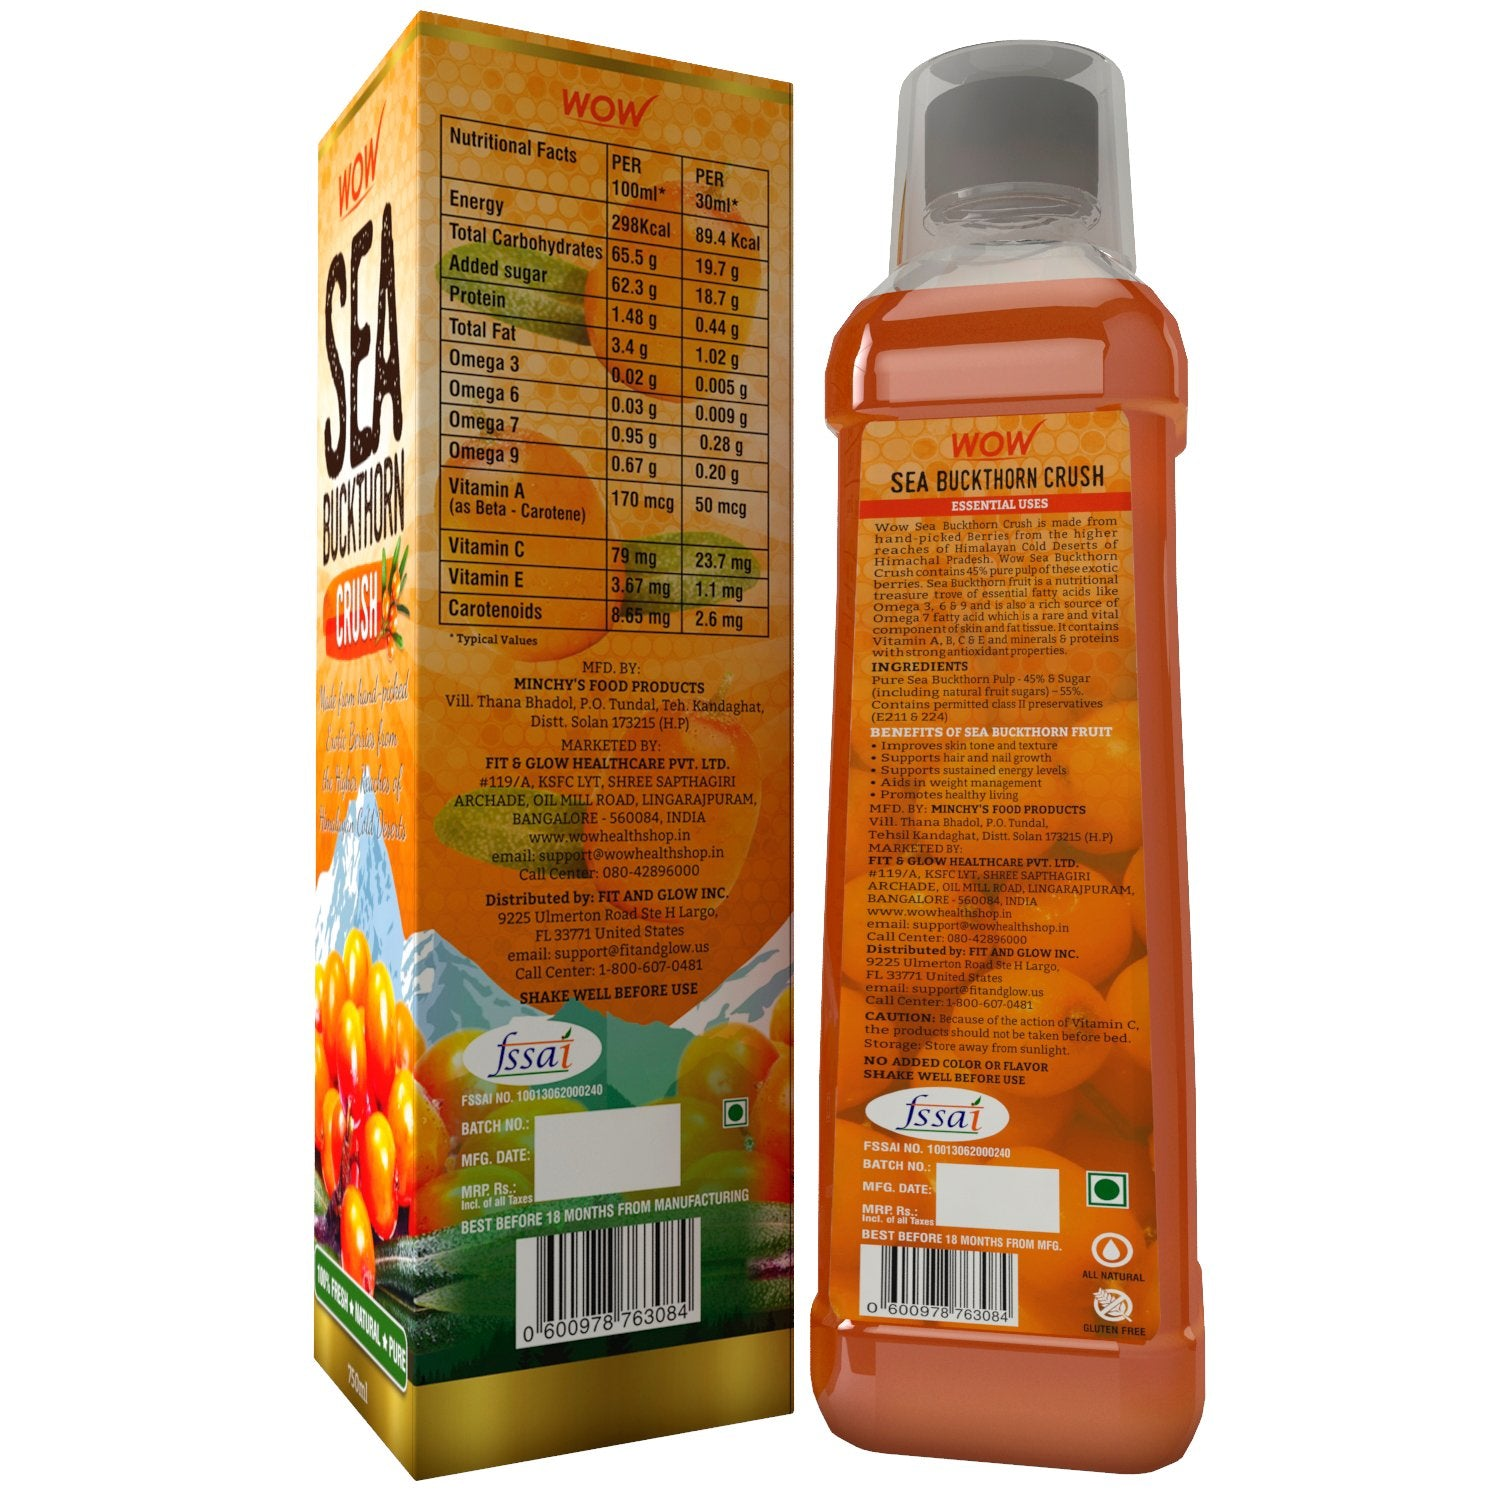 Wow Sea Buckthorn Crush - BuyWow